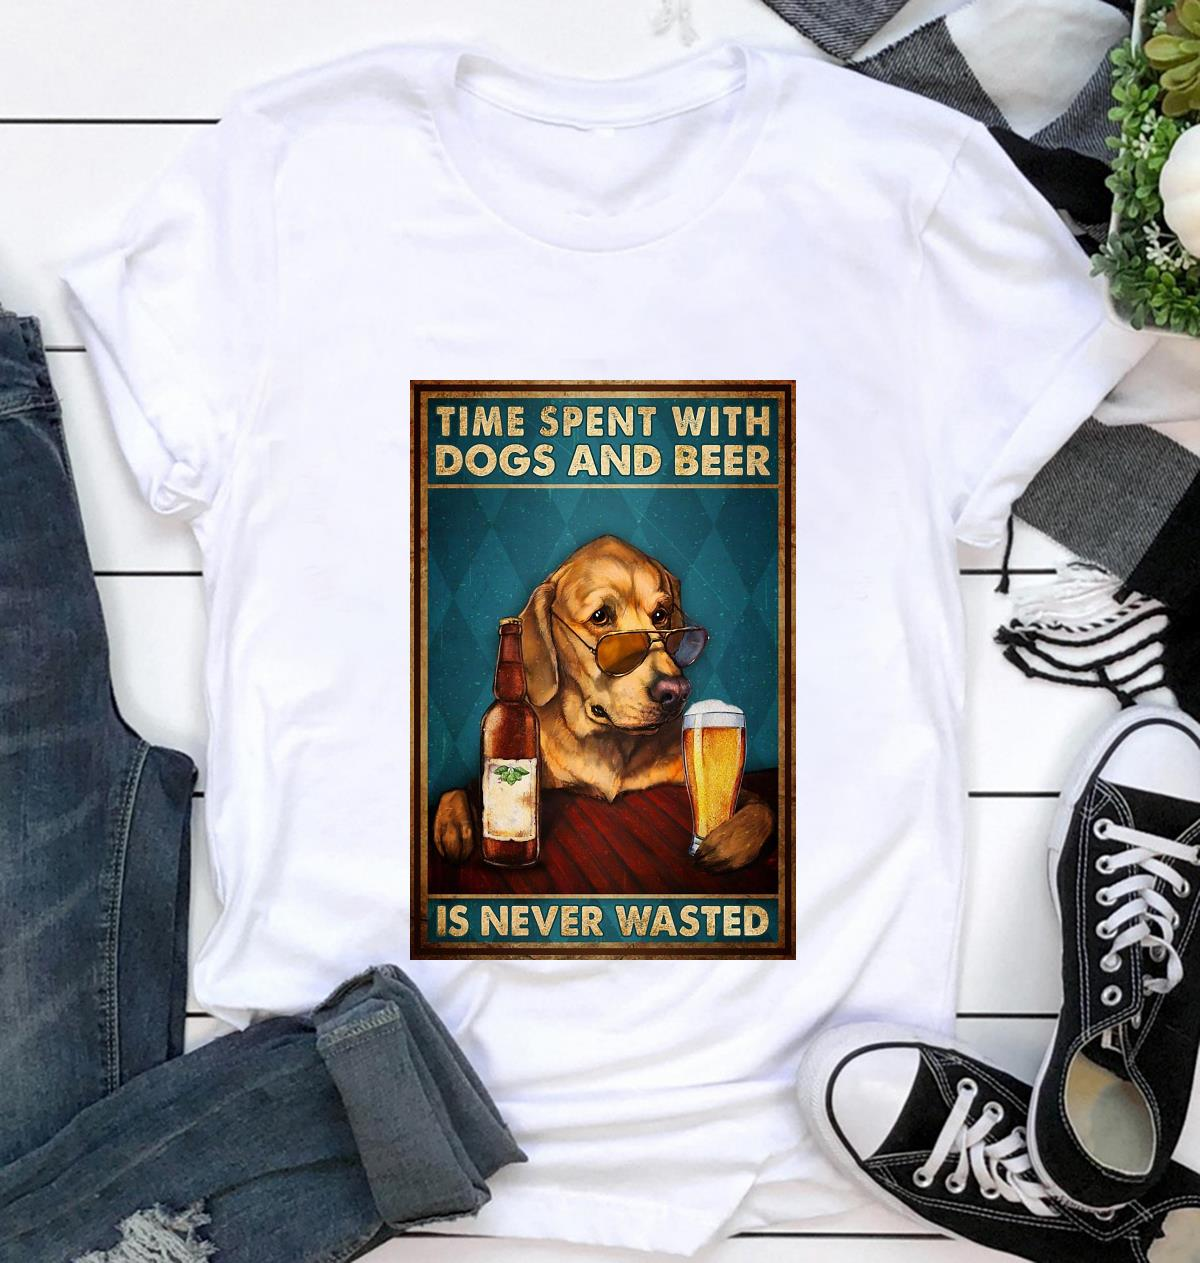 Time spent with dogs and beer is never wasted poster t-shirt